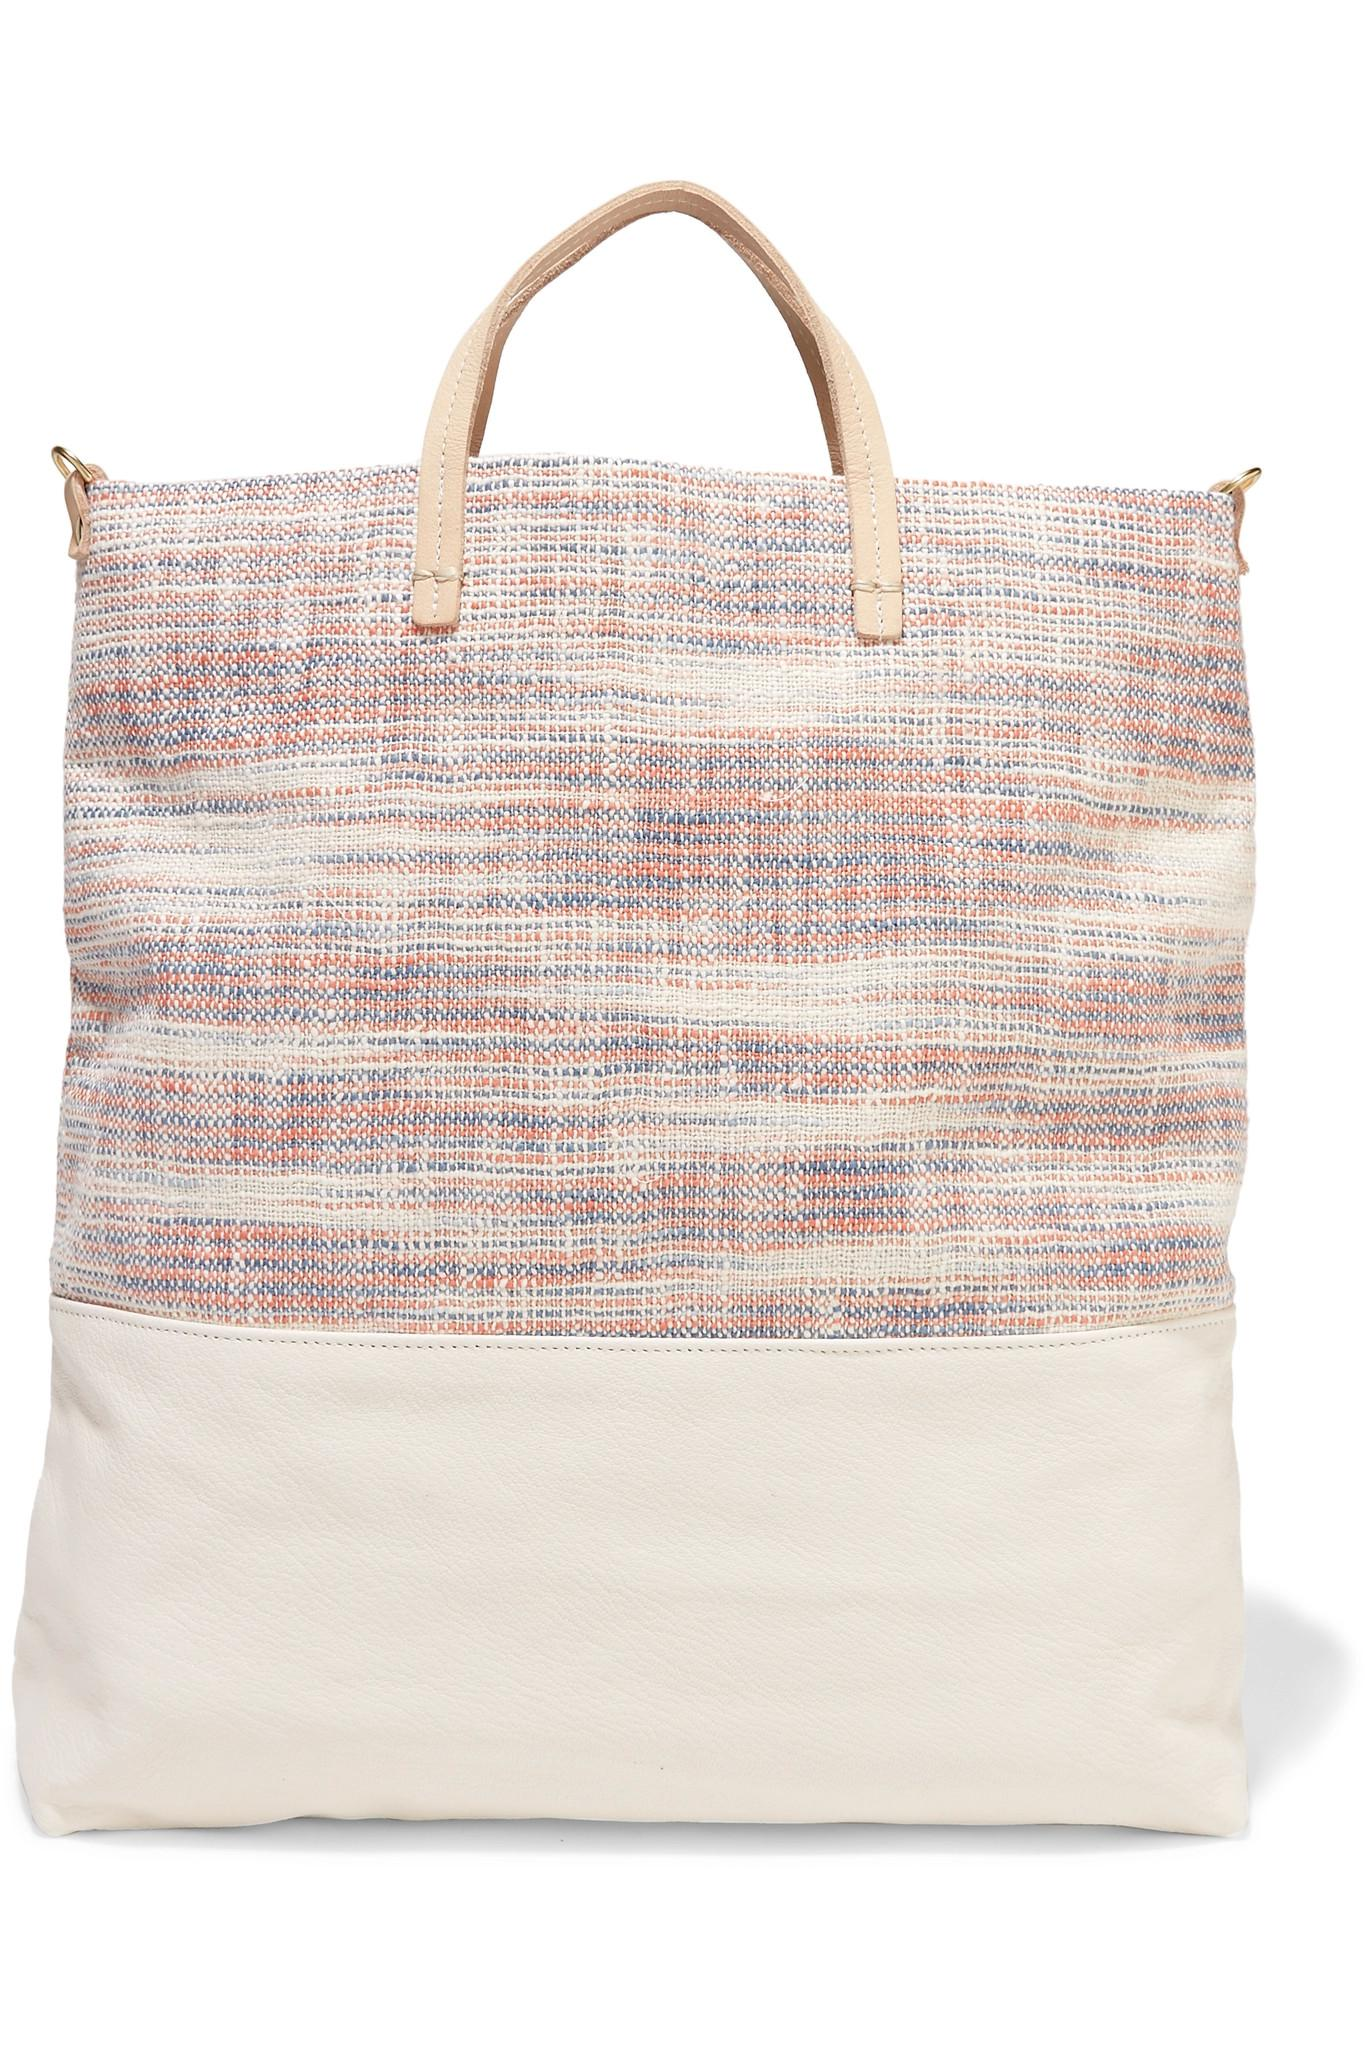 20a3d06cd02a Lyst - Clare V. Matilde Woven Canvas And Textured-leather Tote in White